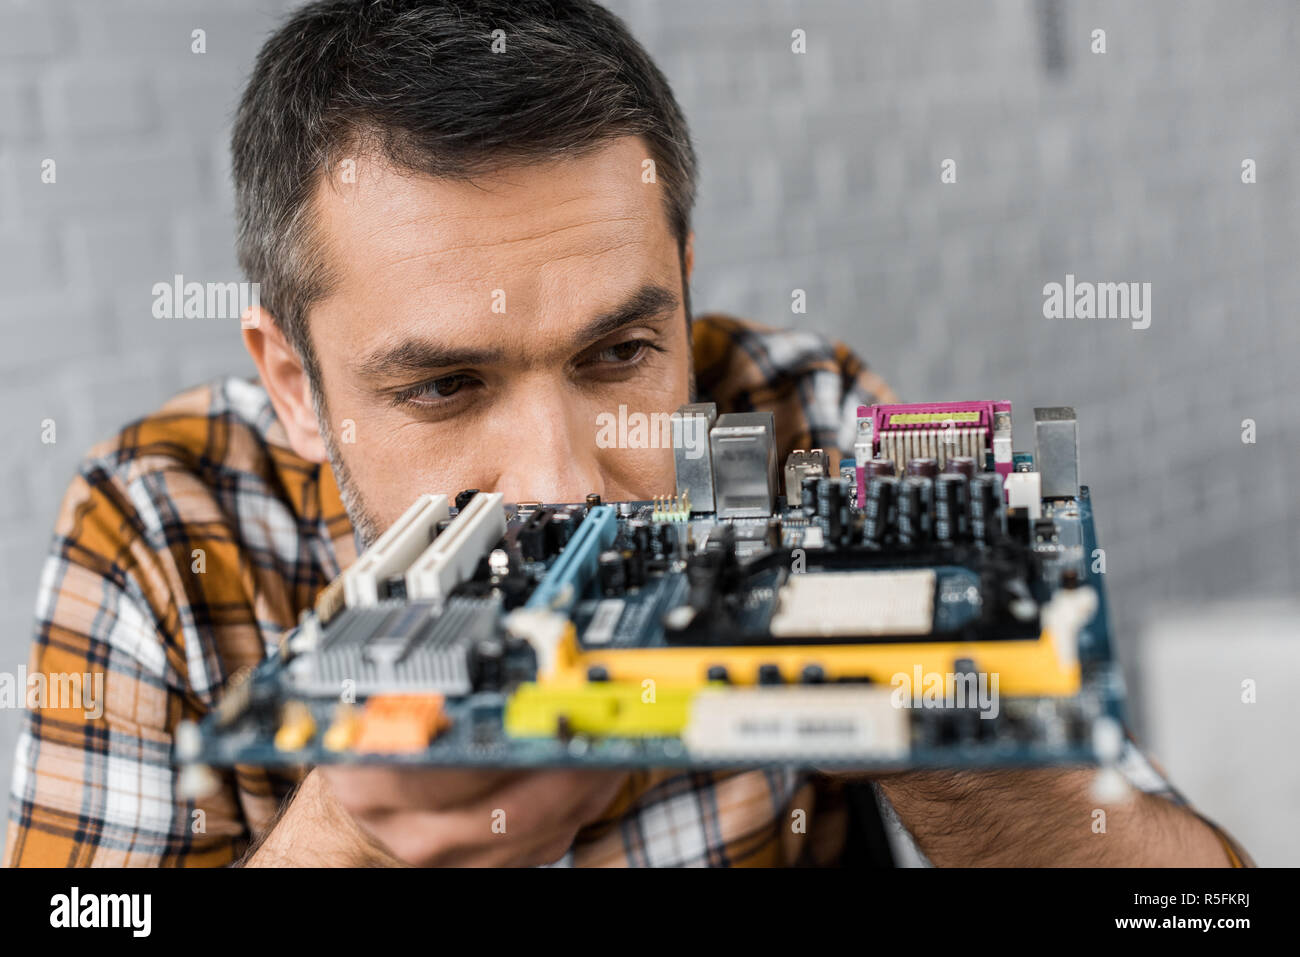 close-up portrait of handsome computer engineer with motherboard - Stock Image